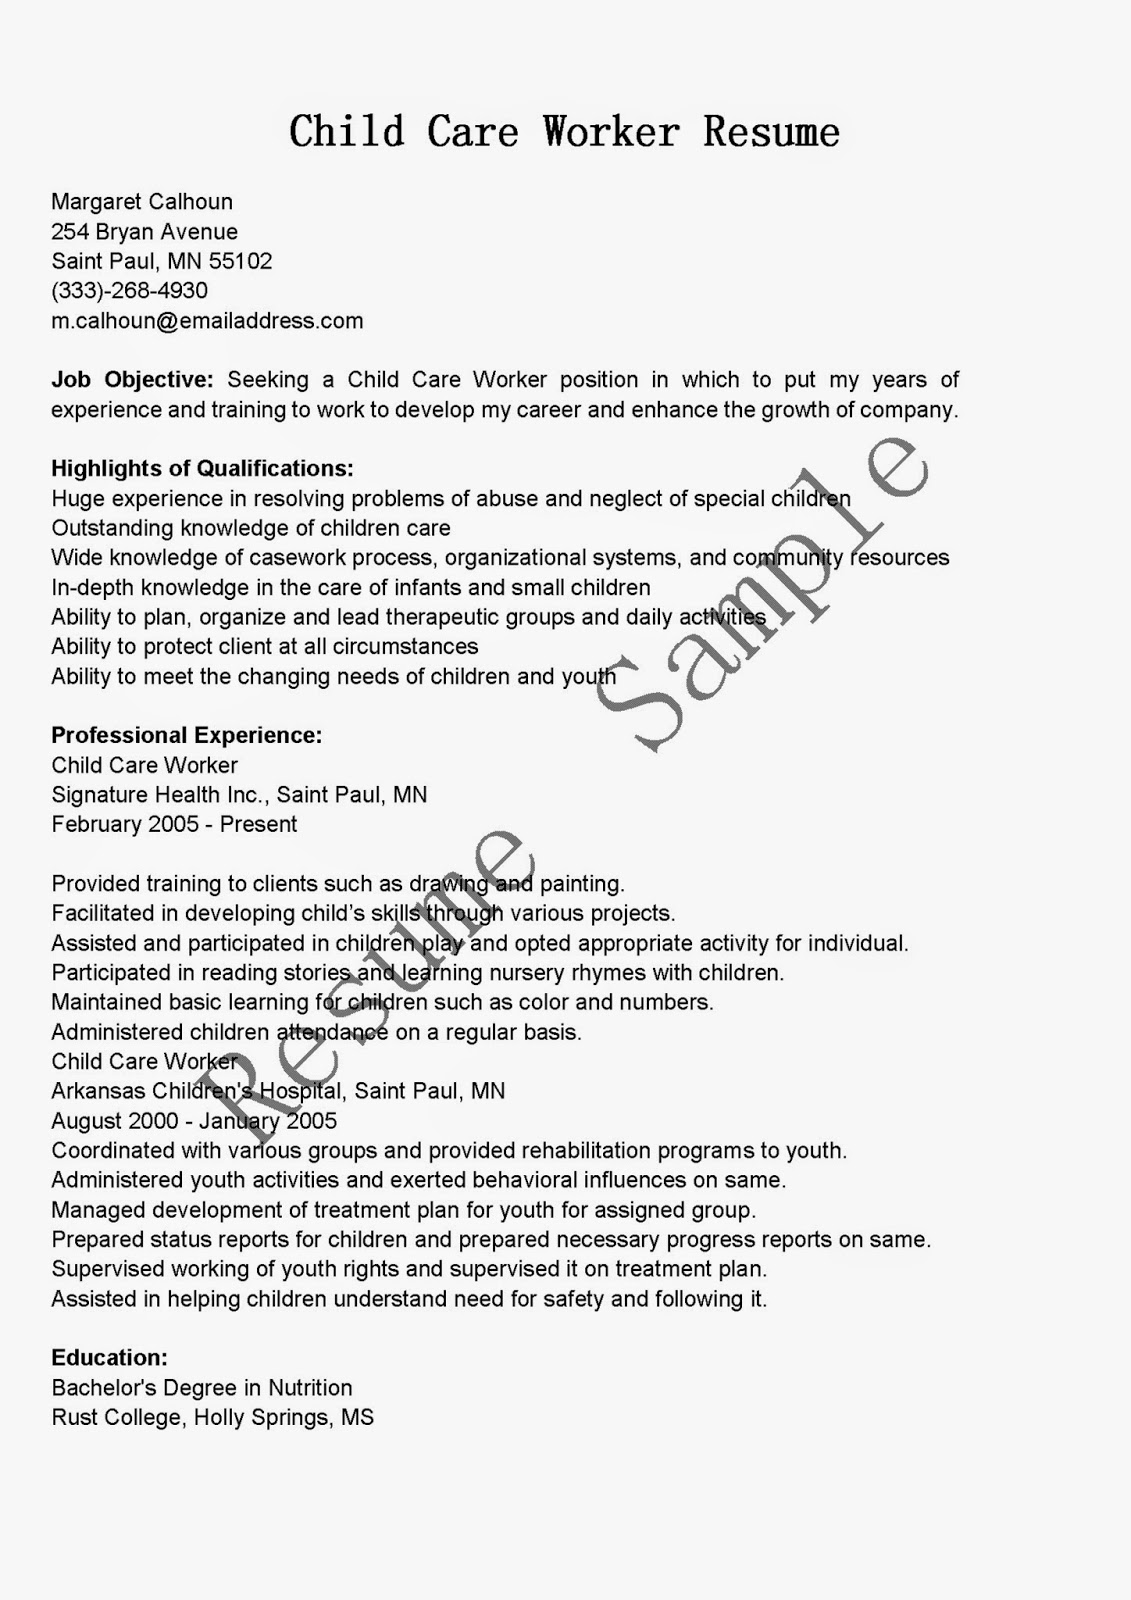 Child Care Worker Resume Free Image On Your Keyword